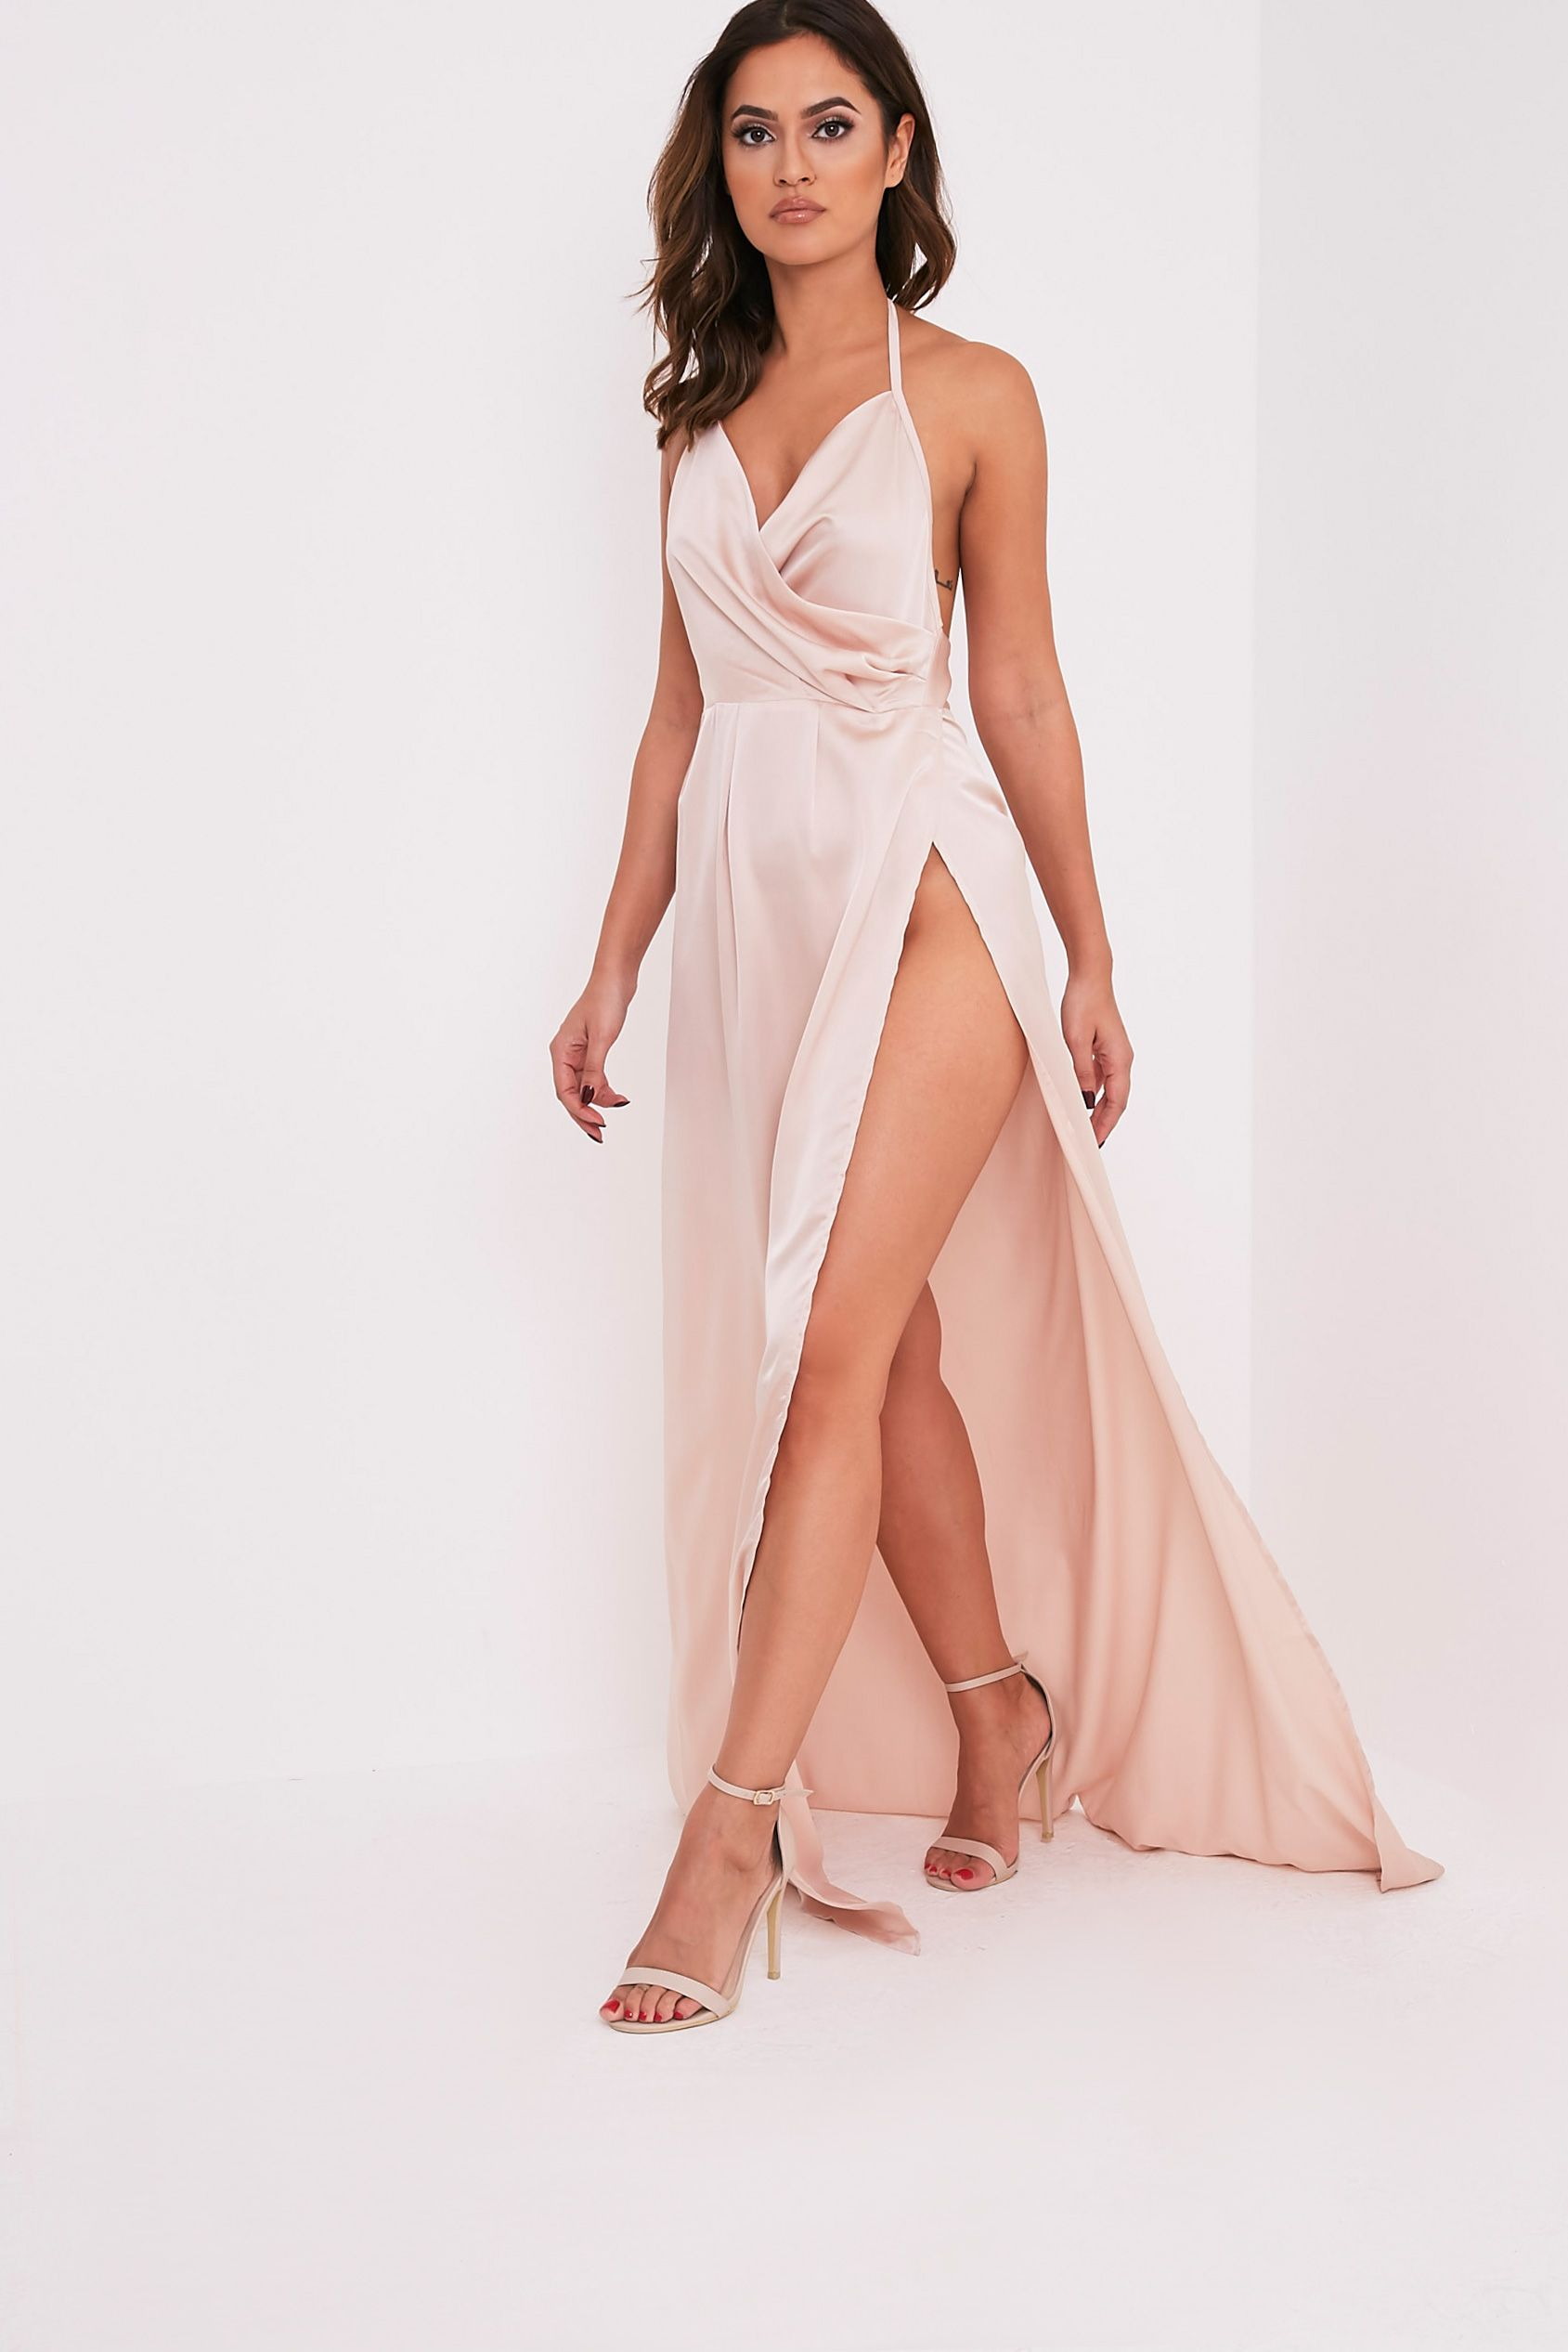 Nude Sleeveless Plunge Mesh Split Leg Maxi Dress Pretty Little Thing Collections Cheap Online Buy Cheap Cheapest Price Buy Cheap For Cheap Cheap Ebay Sale 100% Authentic o7MCdLcVf